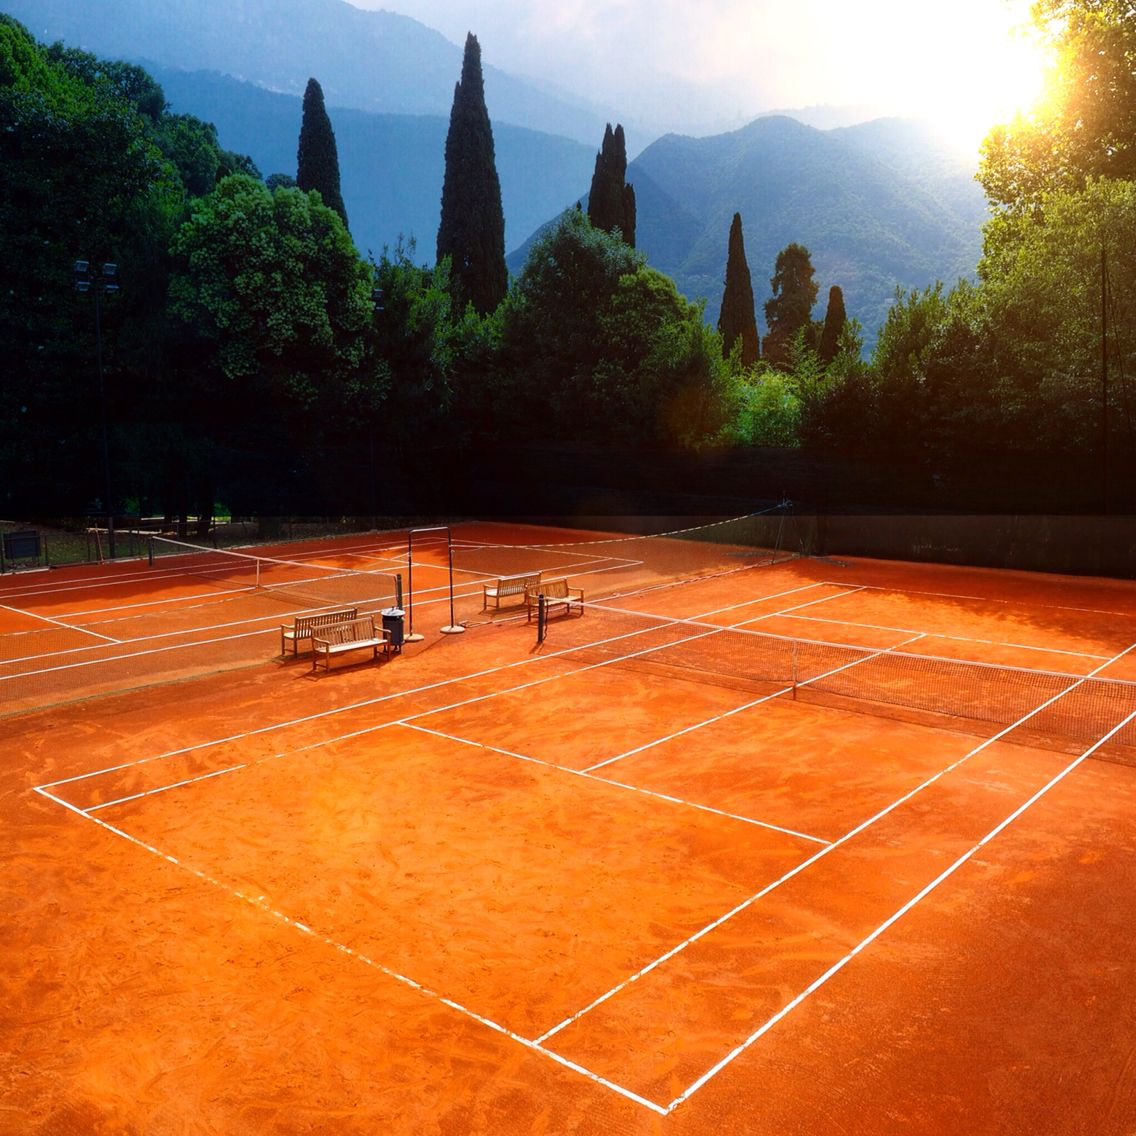 This is another beautiful clay court in the world. Tennis